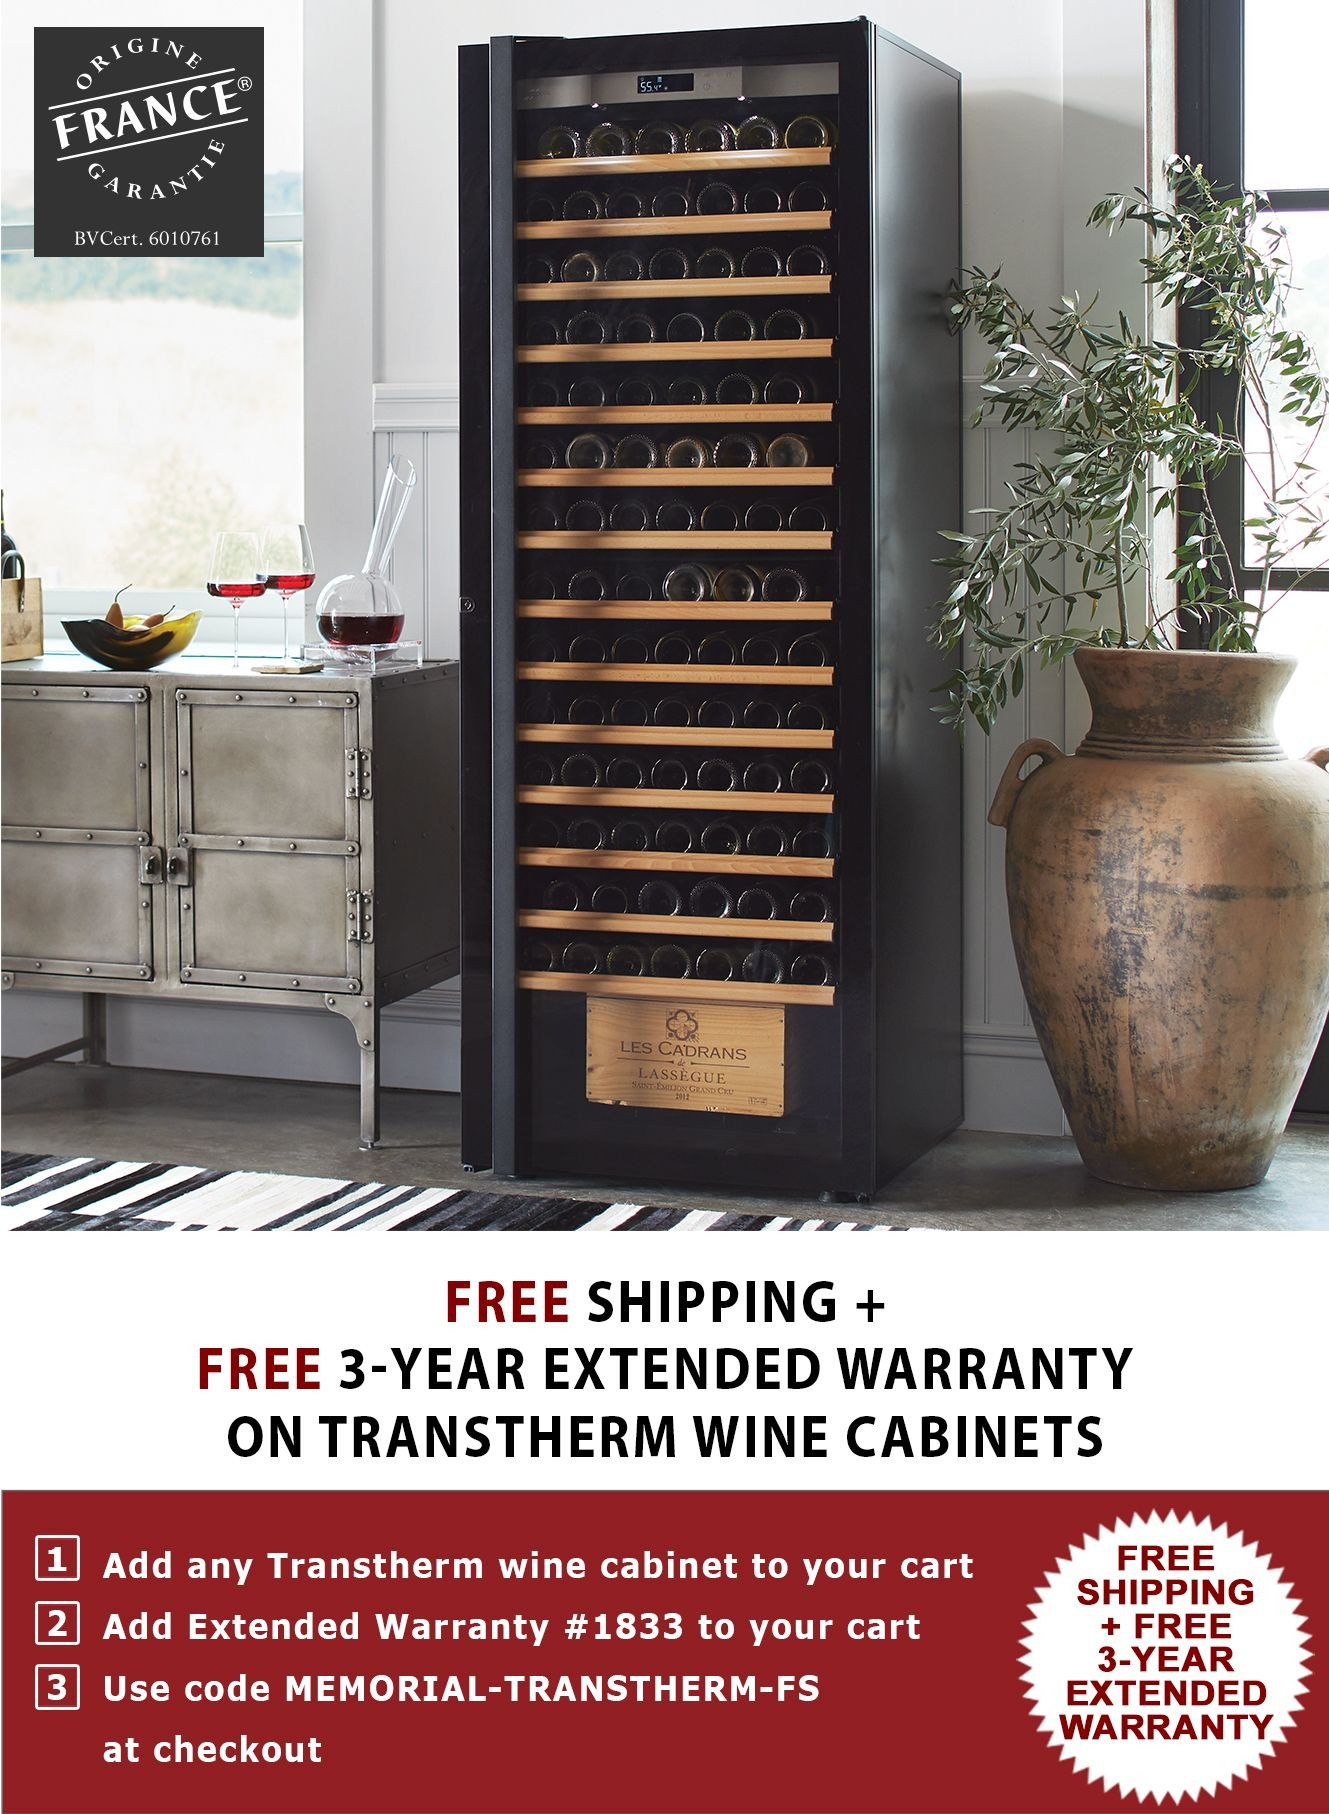 Free Shipping + Free 3 Year Extended Warranty on Transtherm Wine Cabinets. Use Code MEMORIAL-TRANSTHERM-FS.